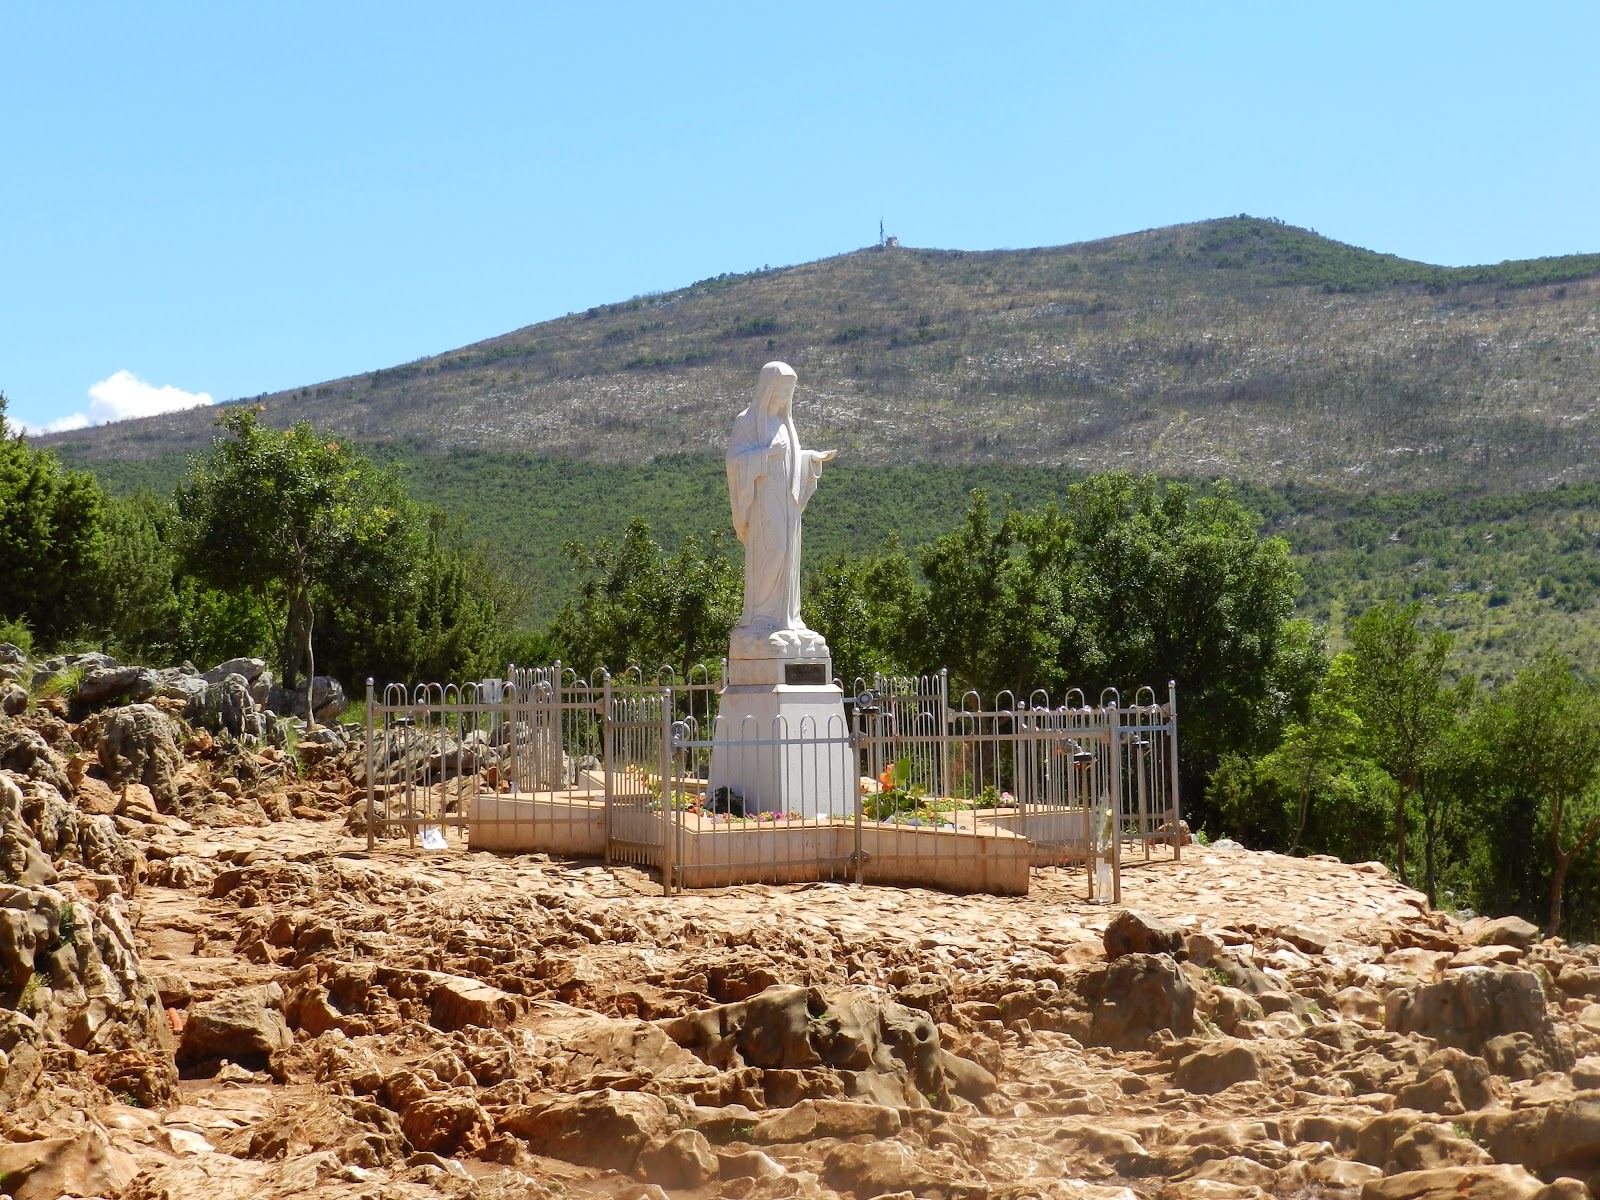 The statue of Our Lady at Apparition HIll